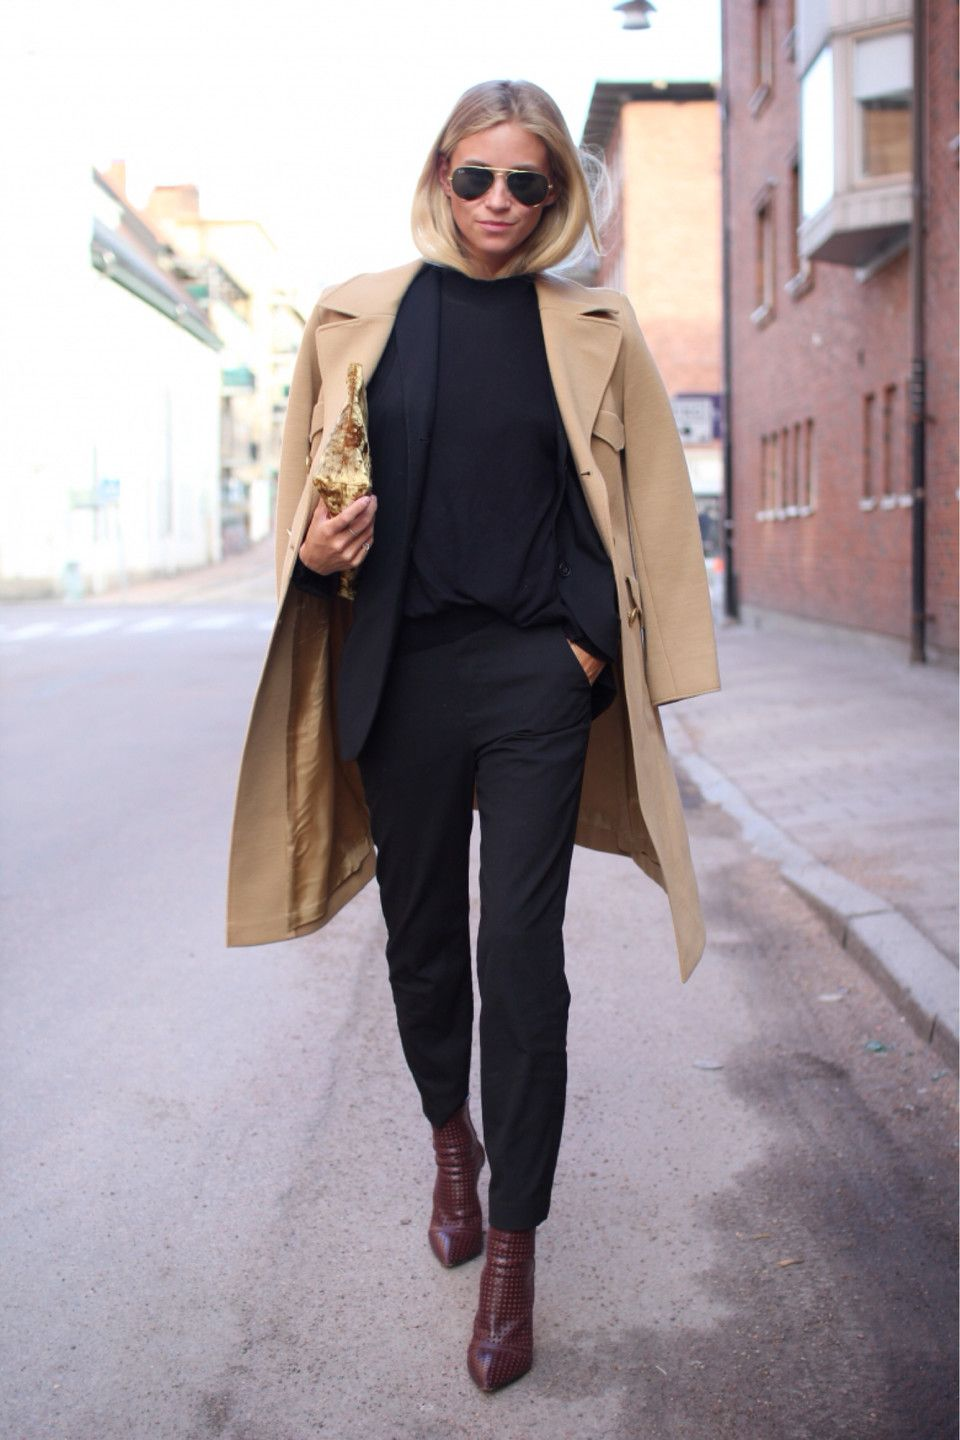 #black is the new #black #chic